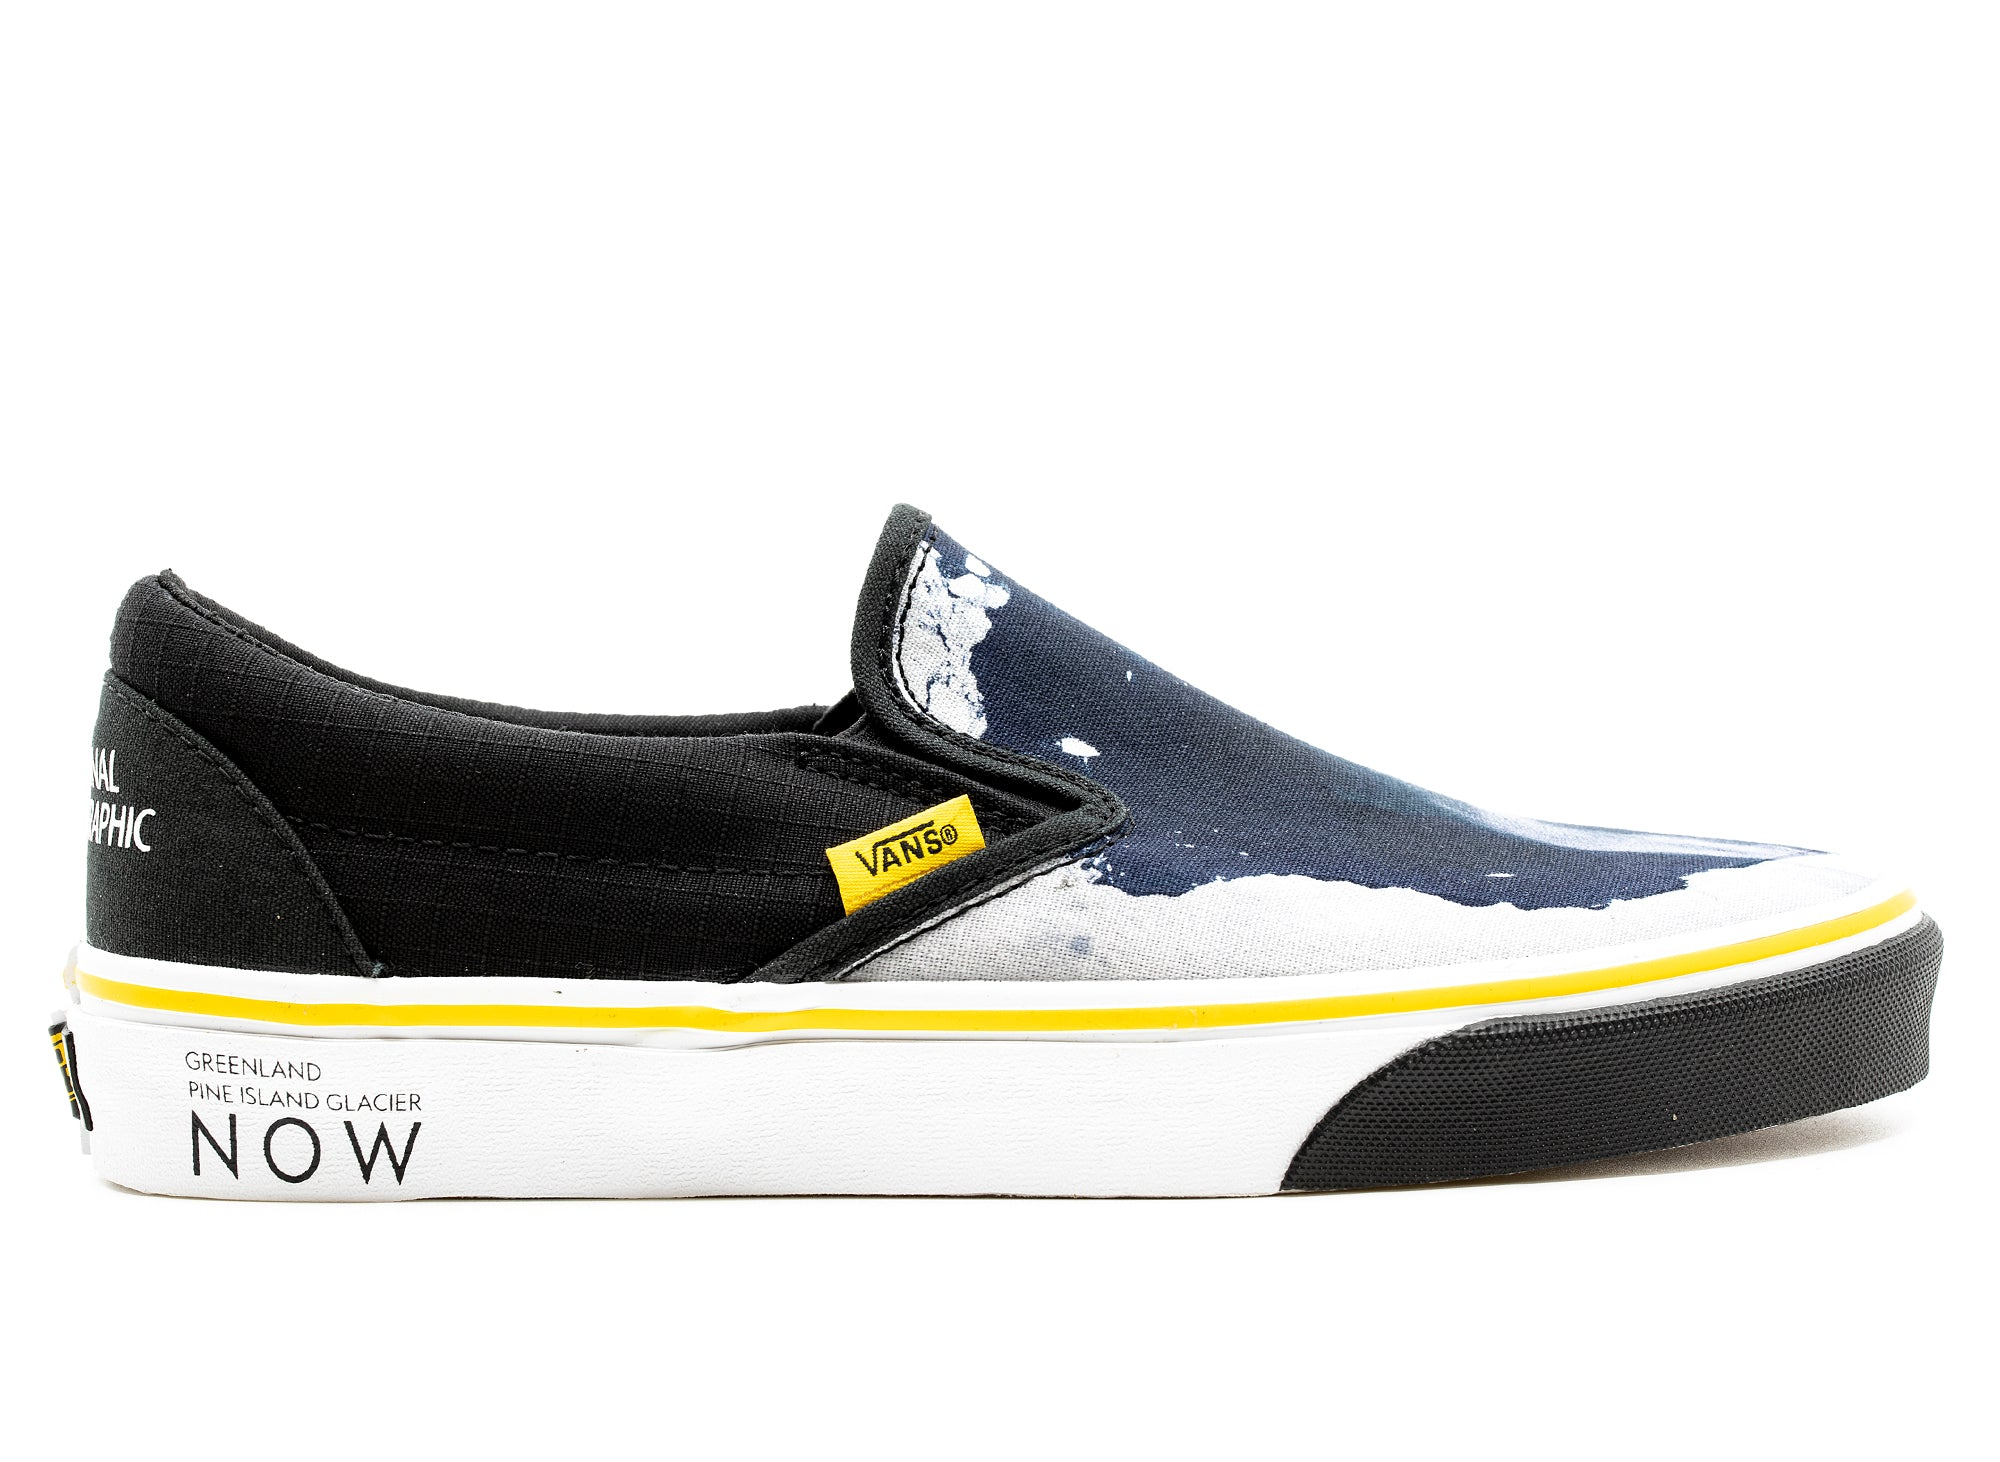 Vans Classic Slip-On 'National Geographic' xld